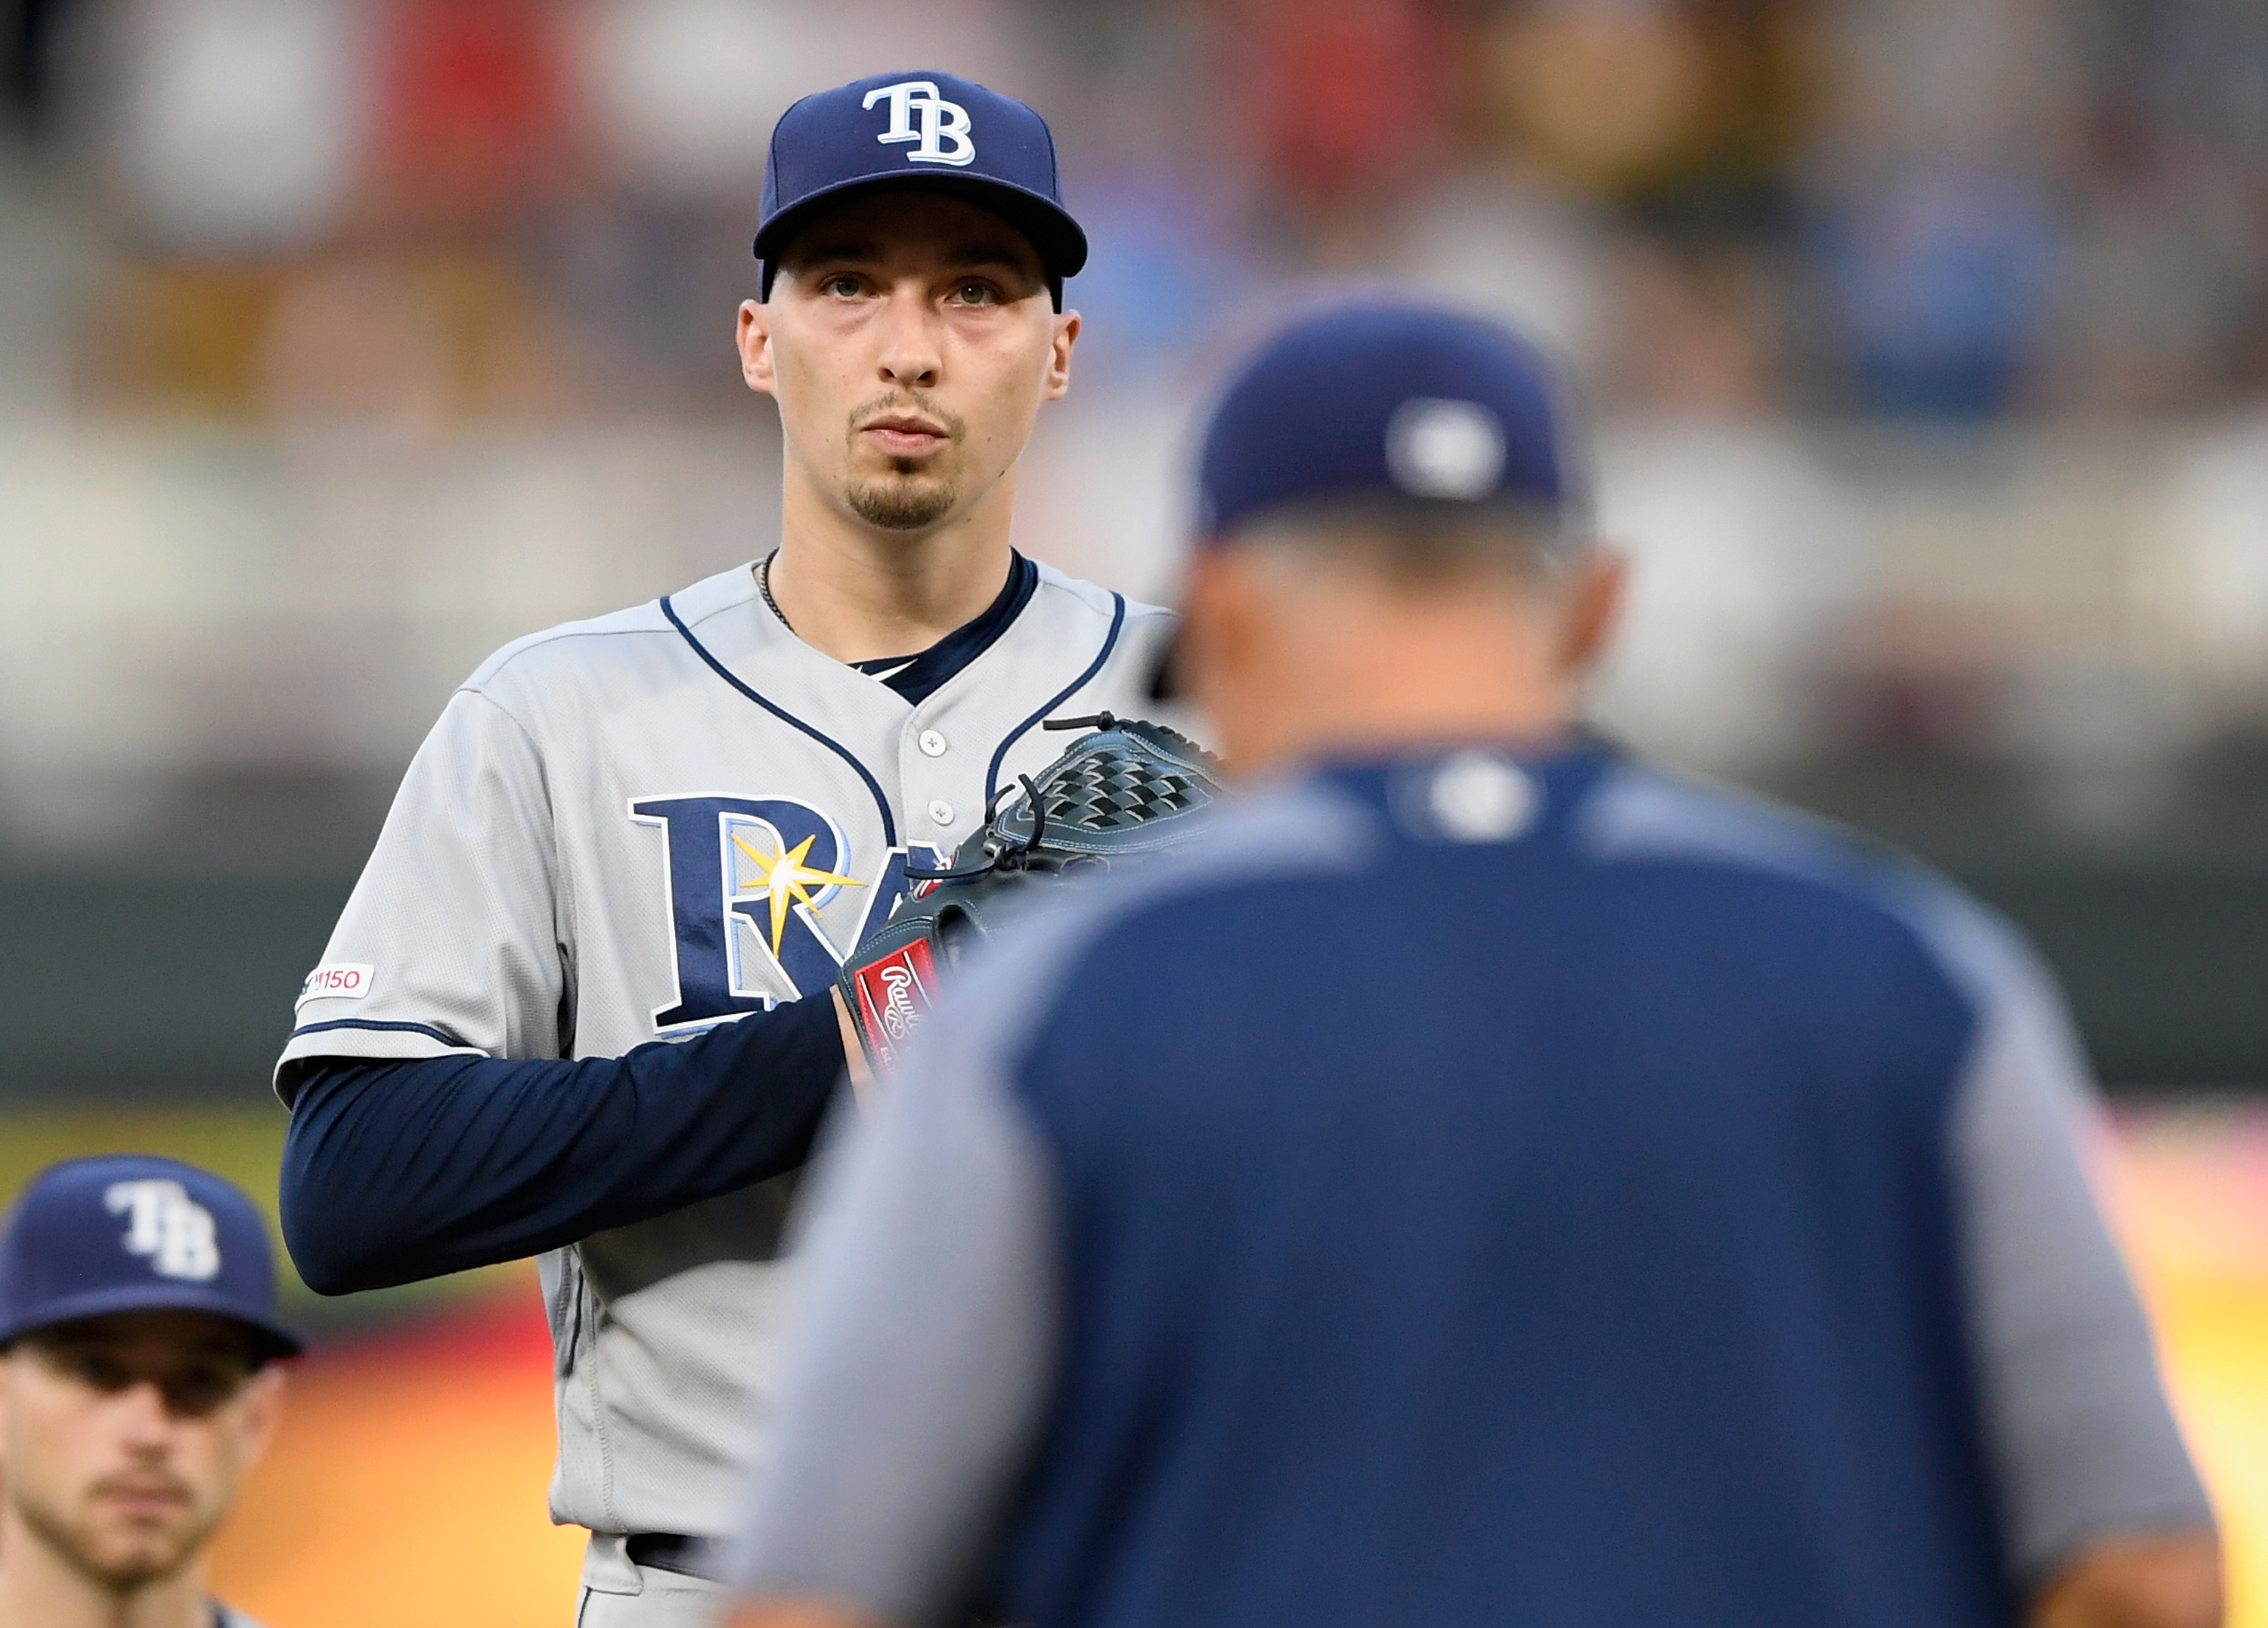 Baseball Fans Blast Rays' Kevin Cash After He Makes One Of The Worst Managerial Decisions In World Series History By Pulling Blake Snell Early